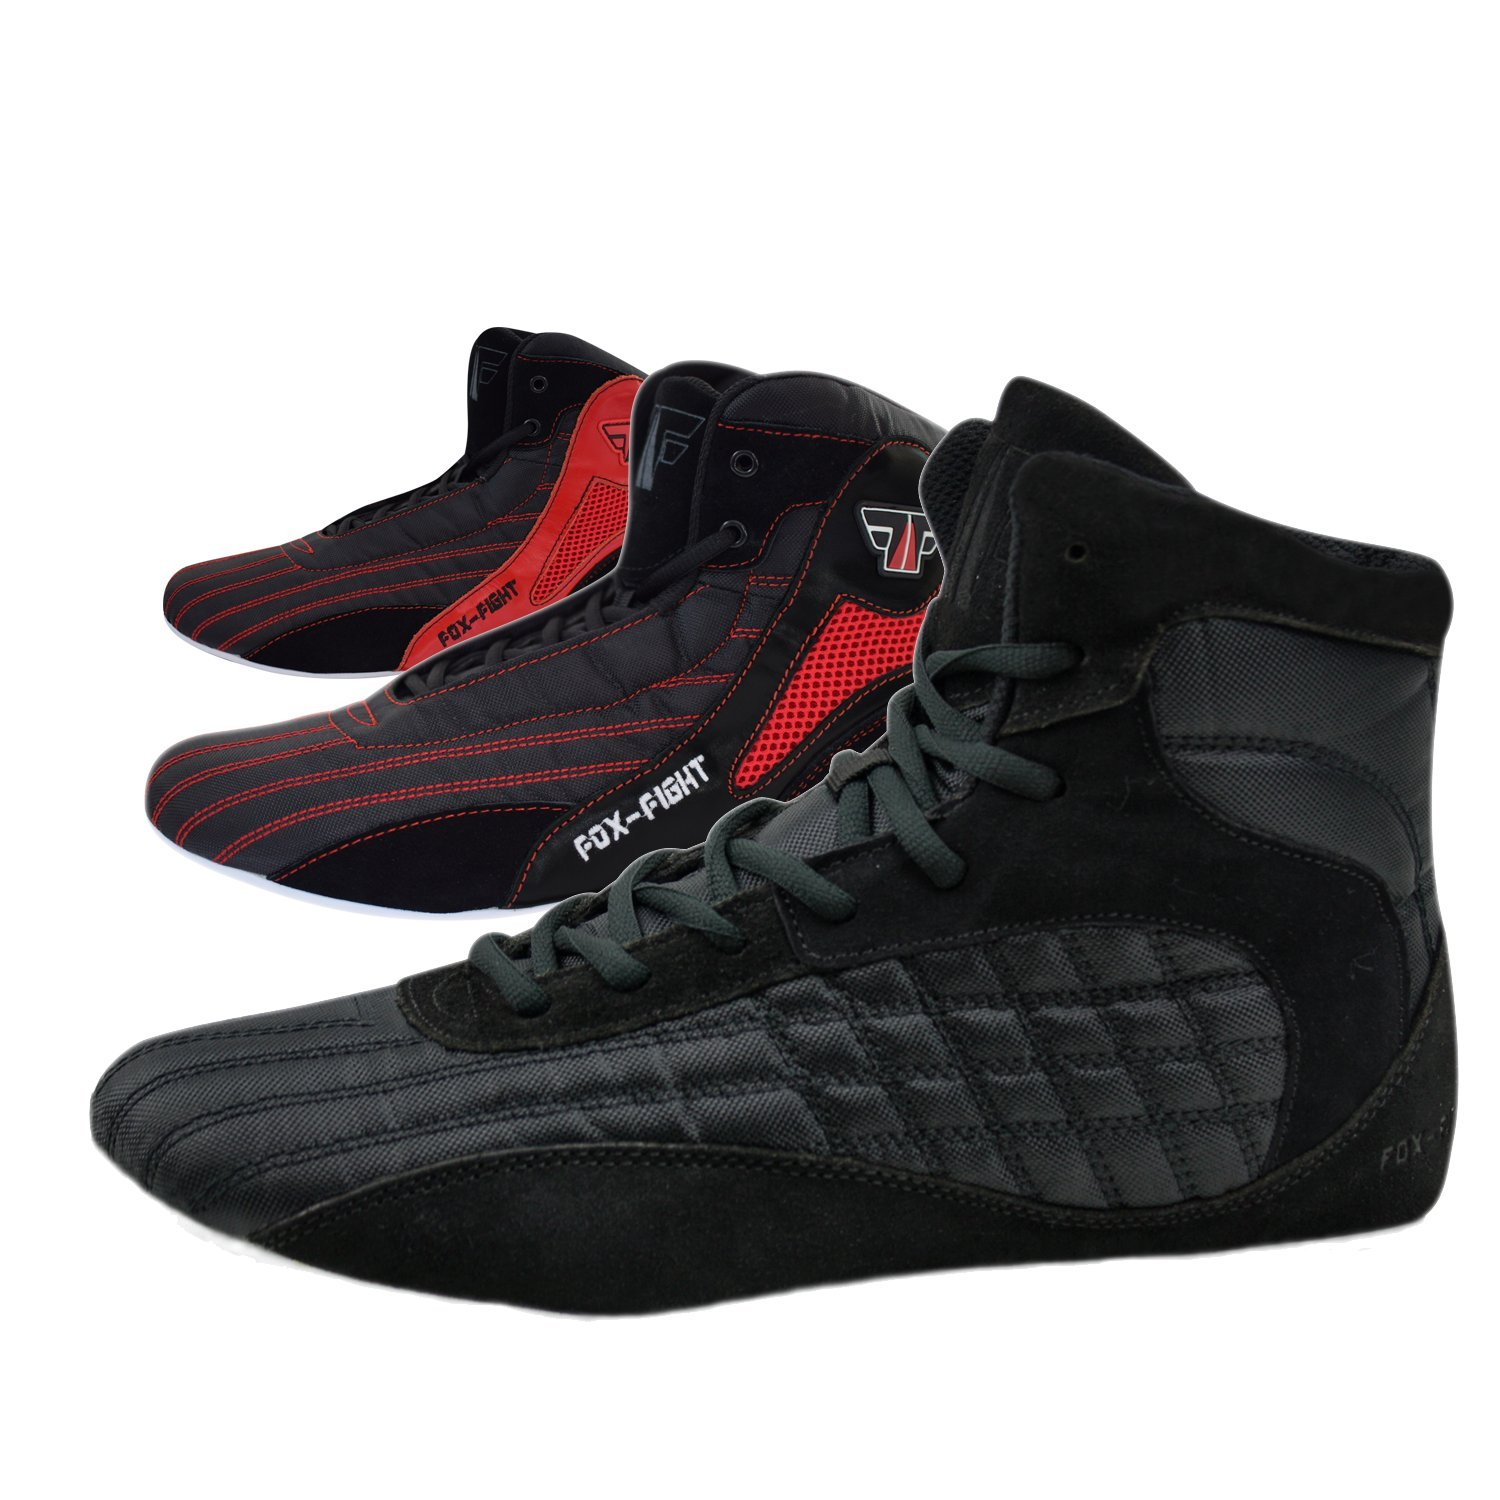 FOX-FIGHT Chaussures de lutte / de boxe / de fitness / de bodybuilding